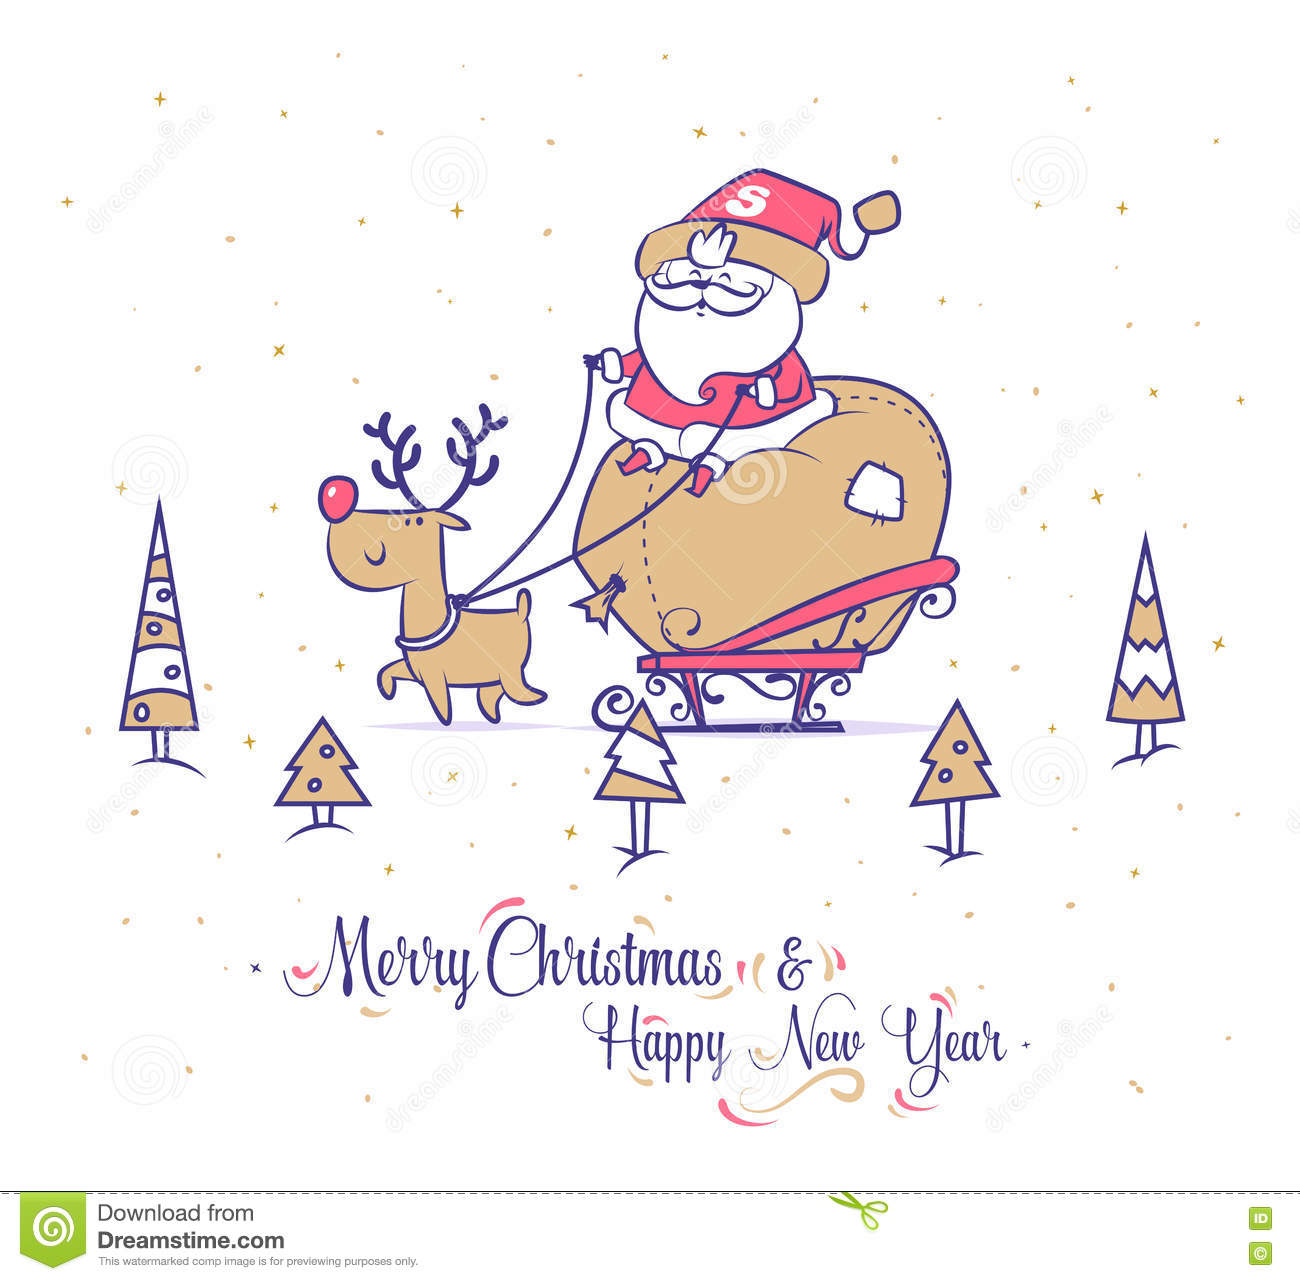 santa carries gifts to children on a sleigh with reindeer christmas greeting card background poster vector illustration merry christmas and happy new - Funny Merry Christmas Greetings